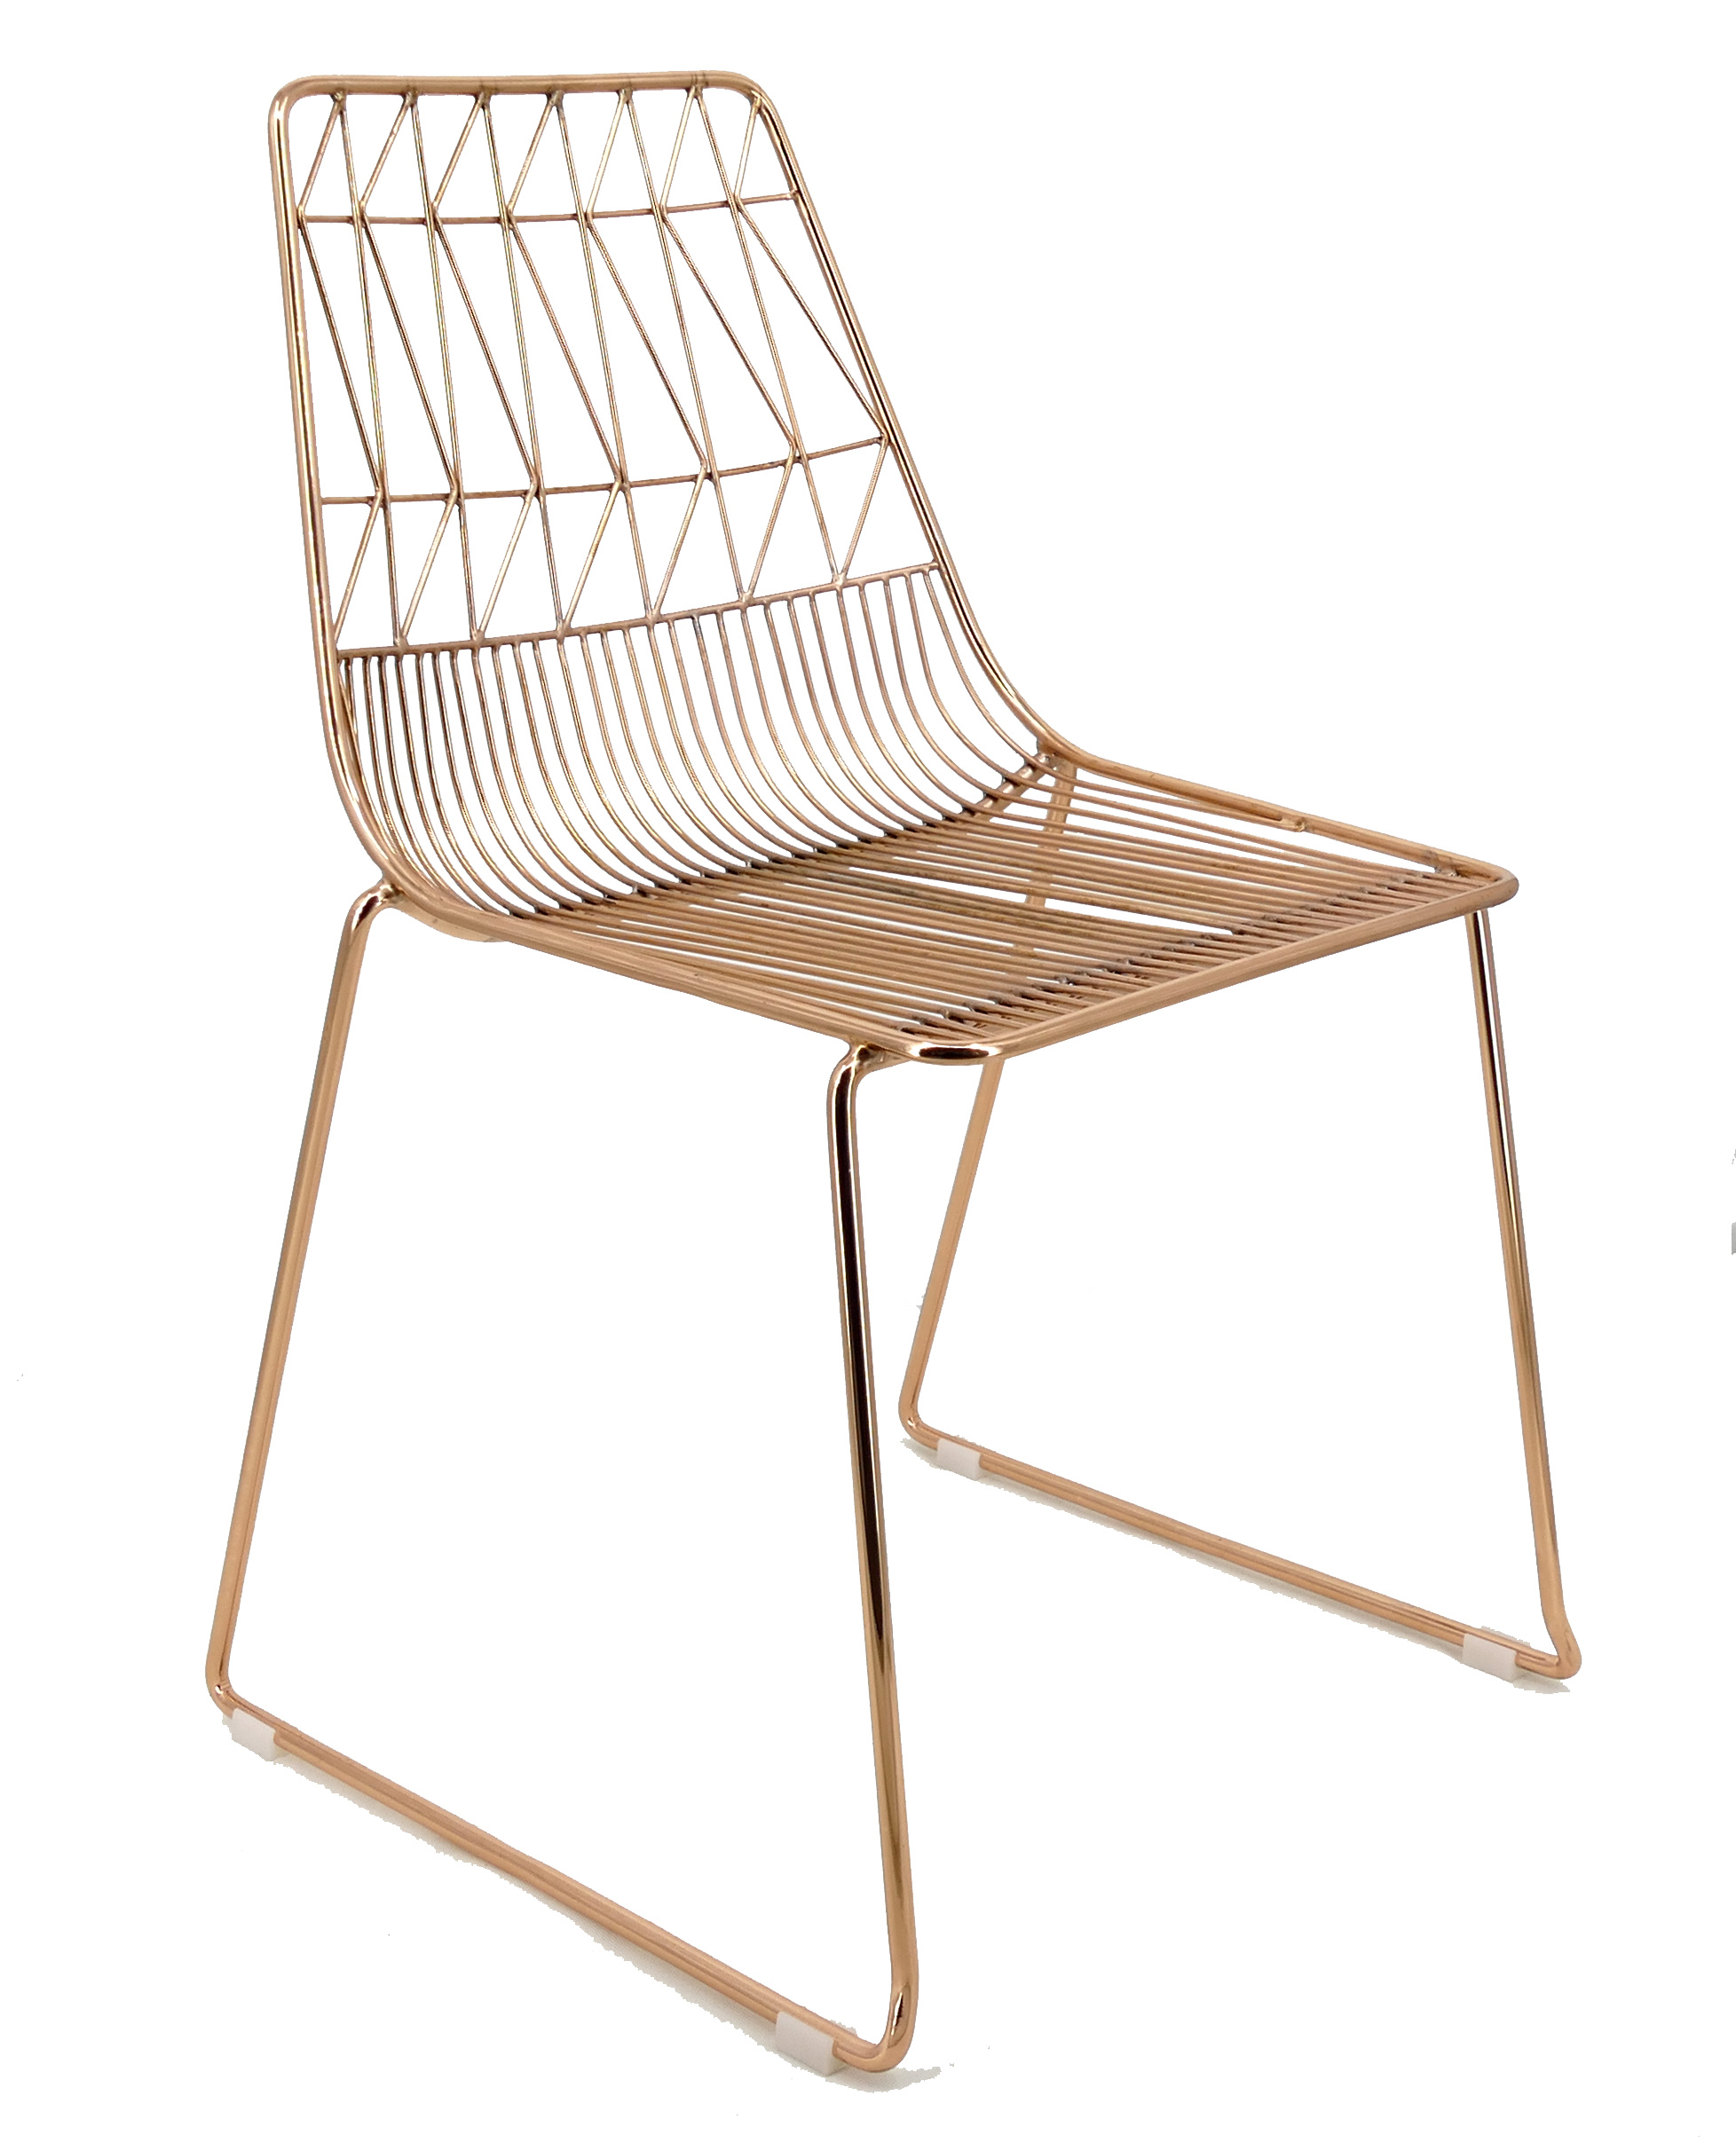 Modern Replica Lucy Wire Dining Chair,outdoor Bent Metal Wire Chairs – Buy  Wire Chair,outdoor Chair,metal Wire Chair Product On Alibaba For Recent Lucy Bar Height Dining Tables (Image 20 of 25)